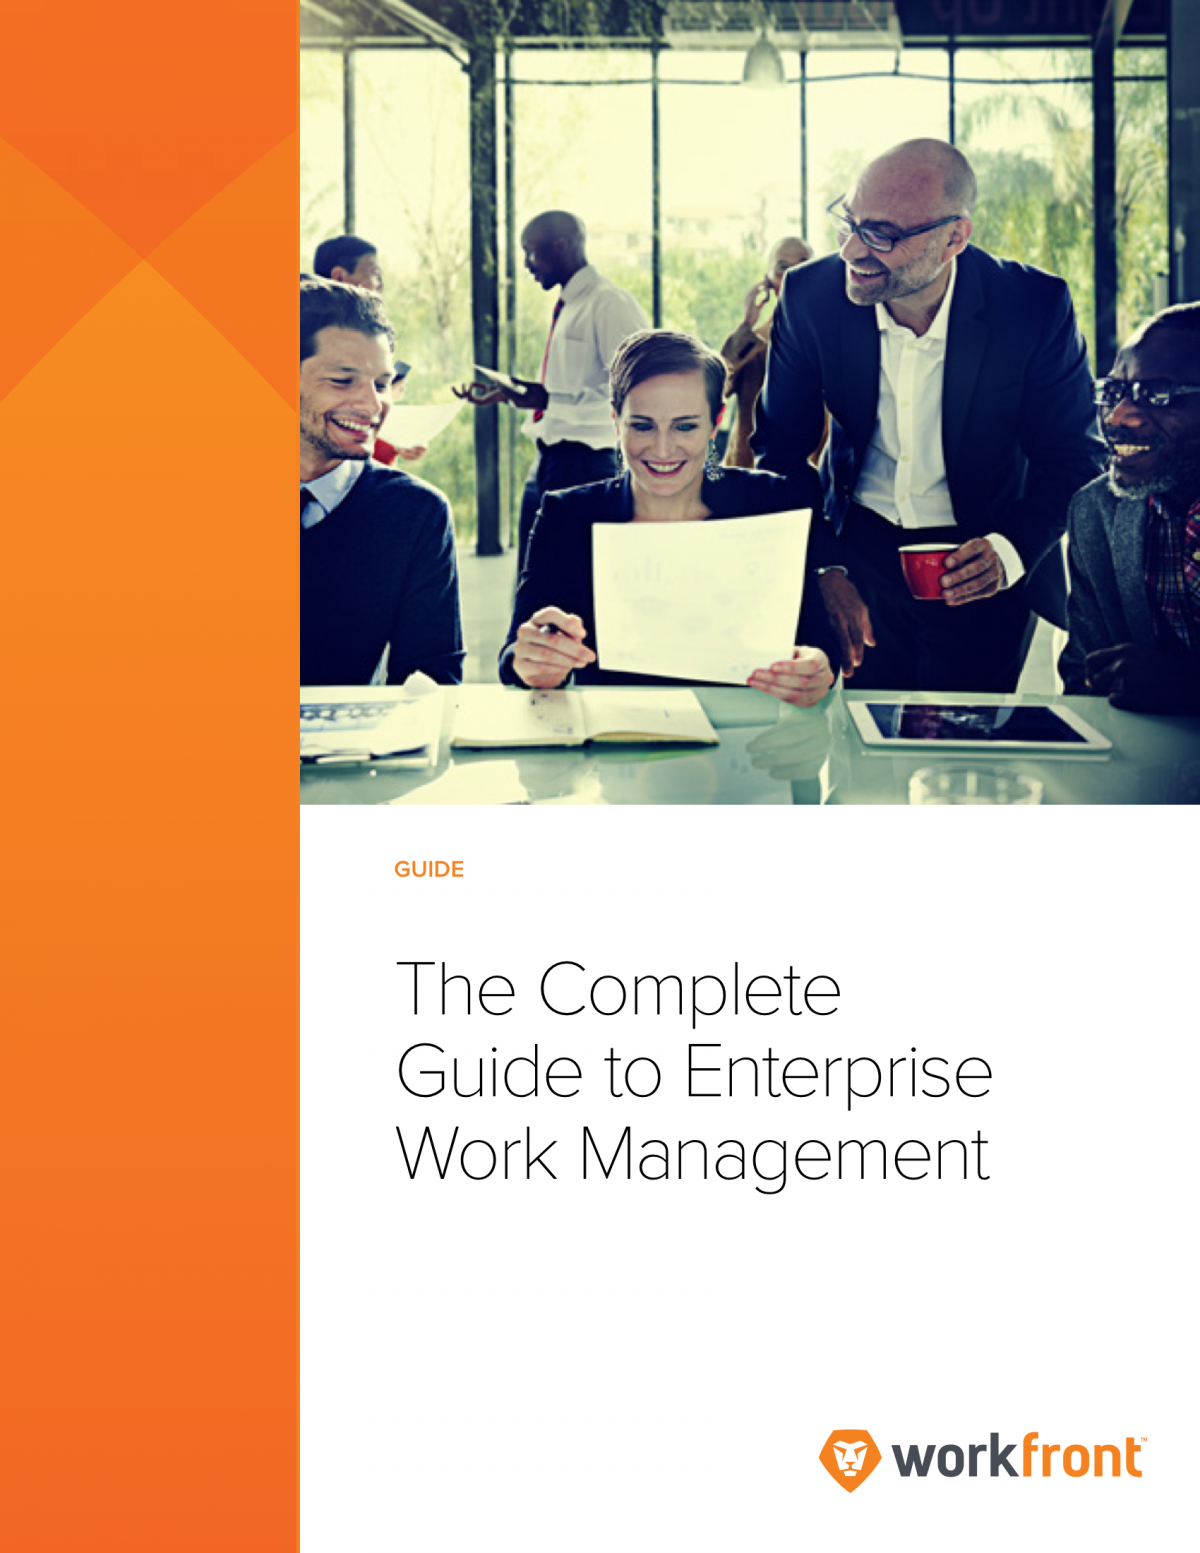 The Complete Guide to Enterprise Work Management